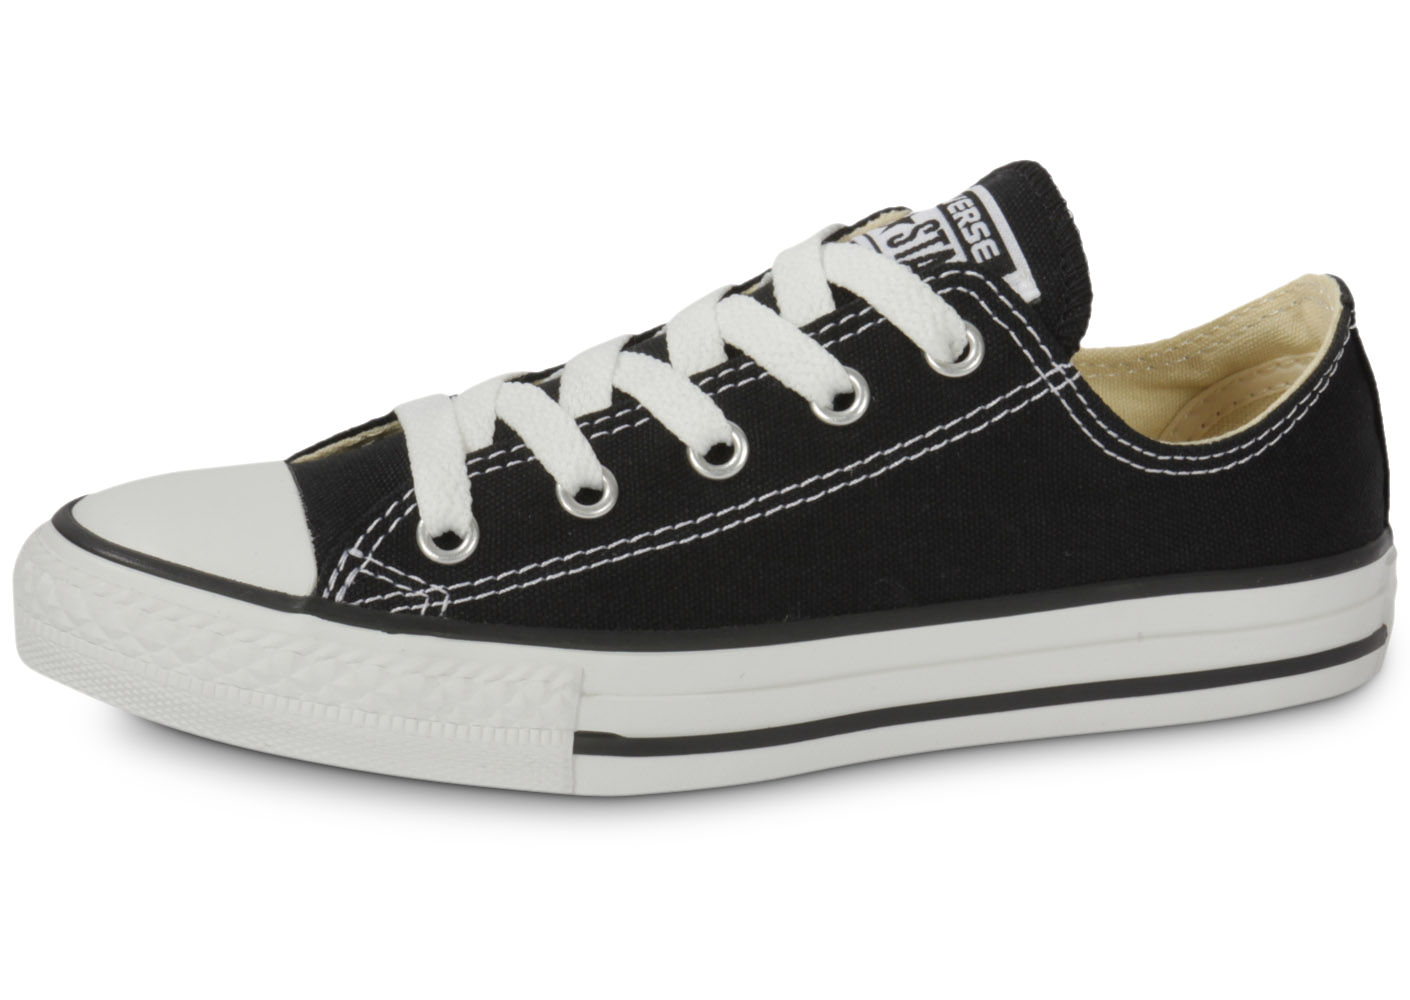 Converse Chuck Taylor All Star Low Noire Tennis Enfant